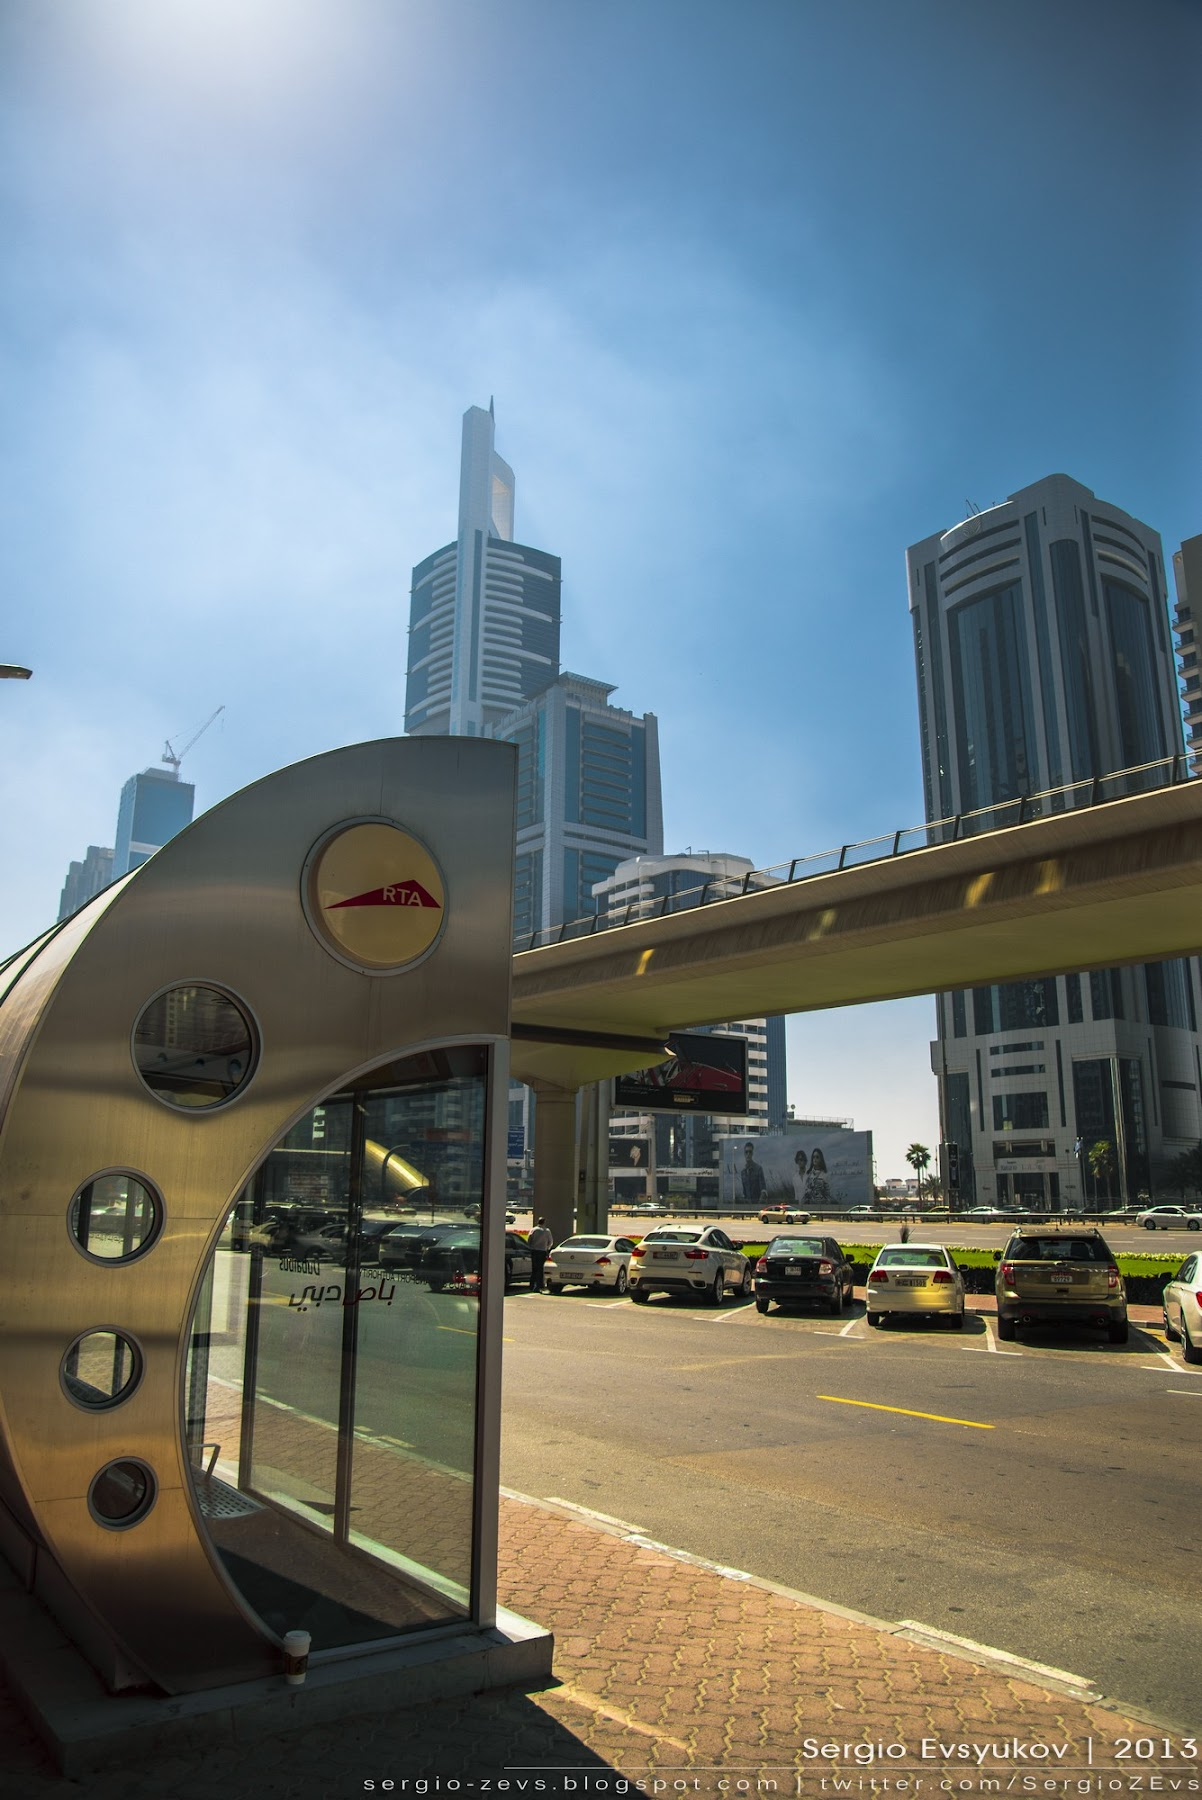 Air-conditioned bus stop in Dubai